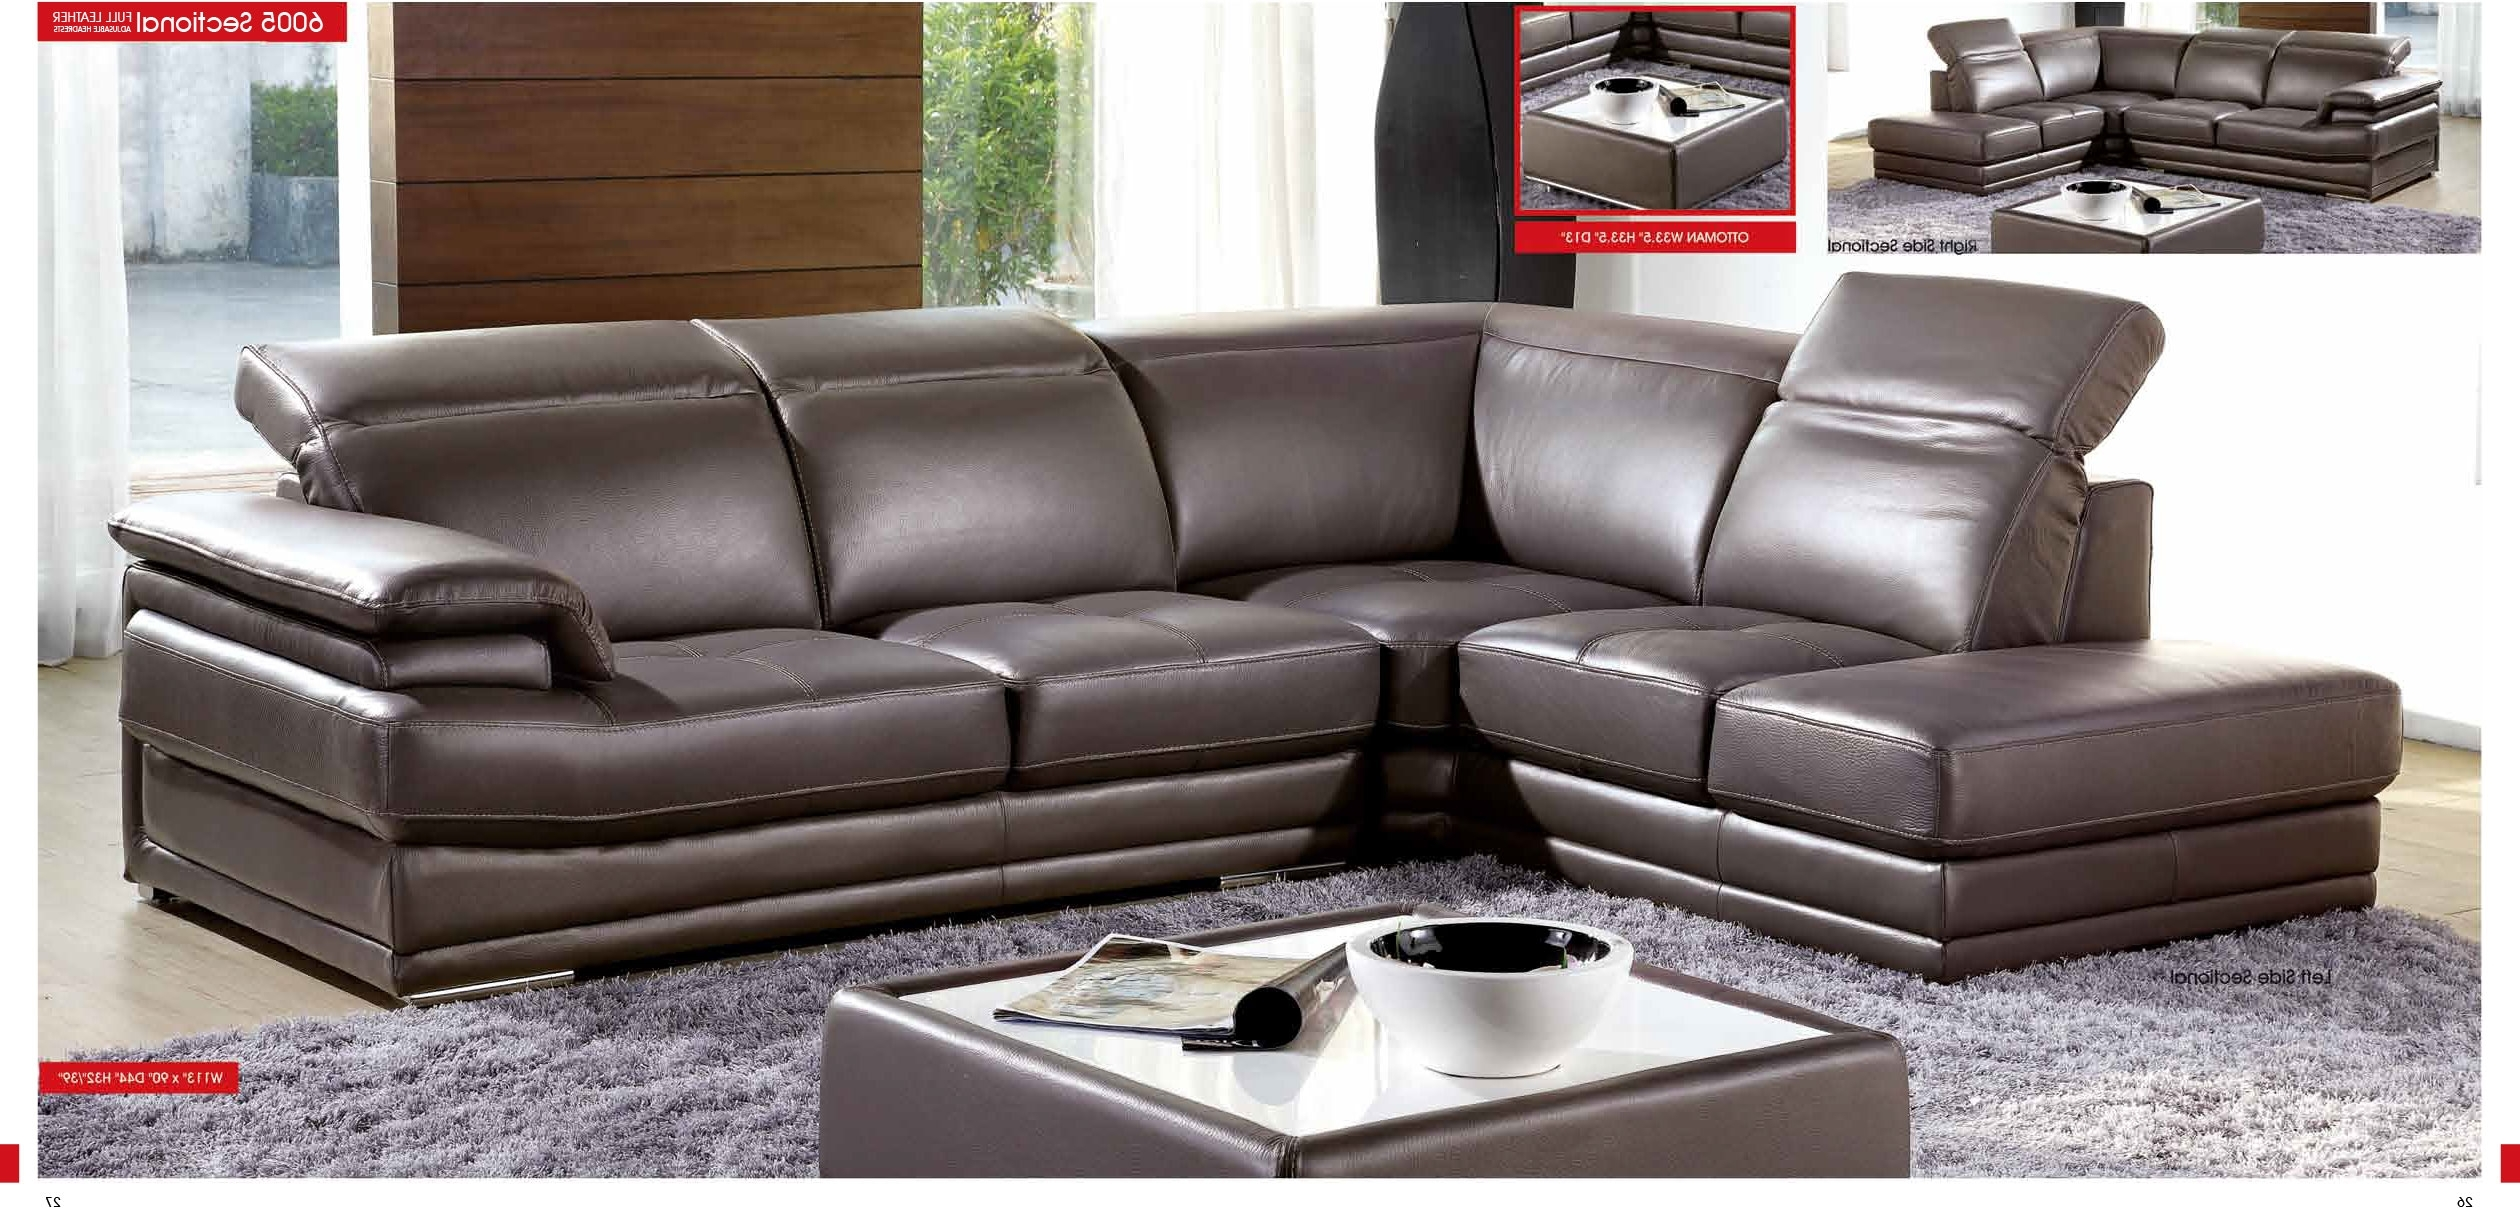 Leather Sectional Sofa Miami (View 2 of 15)